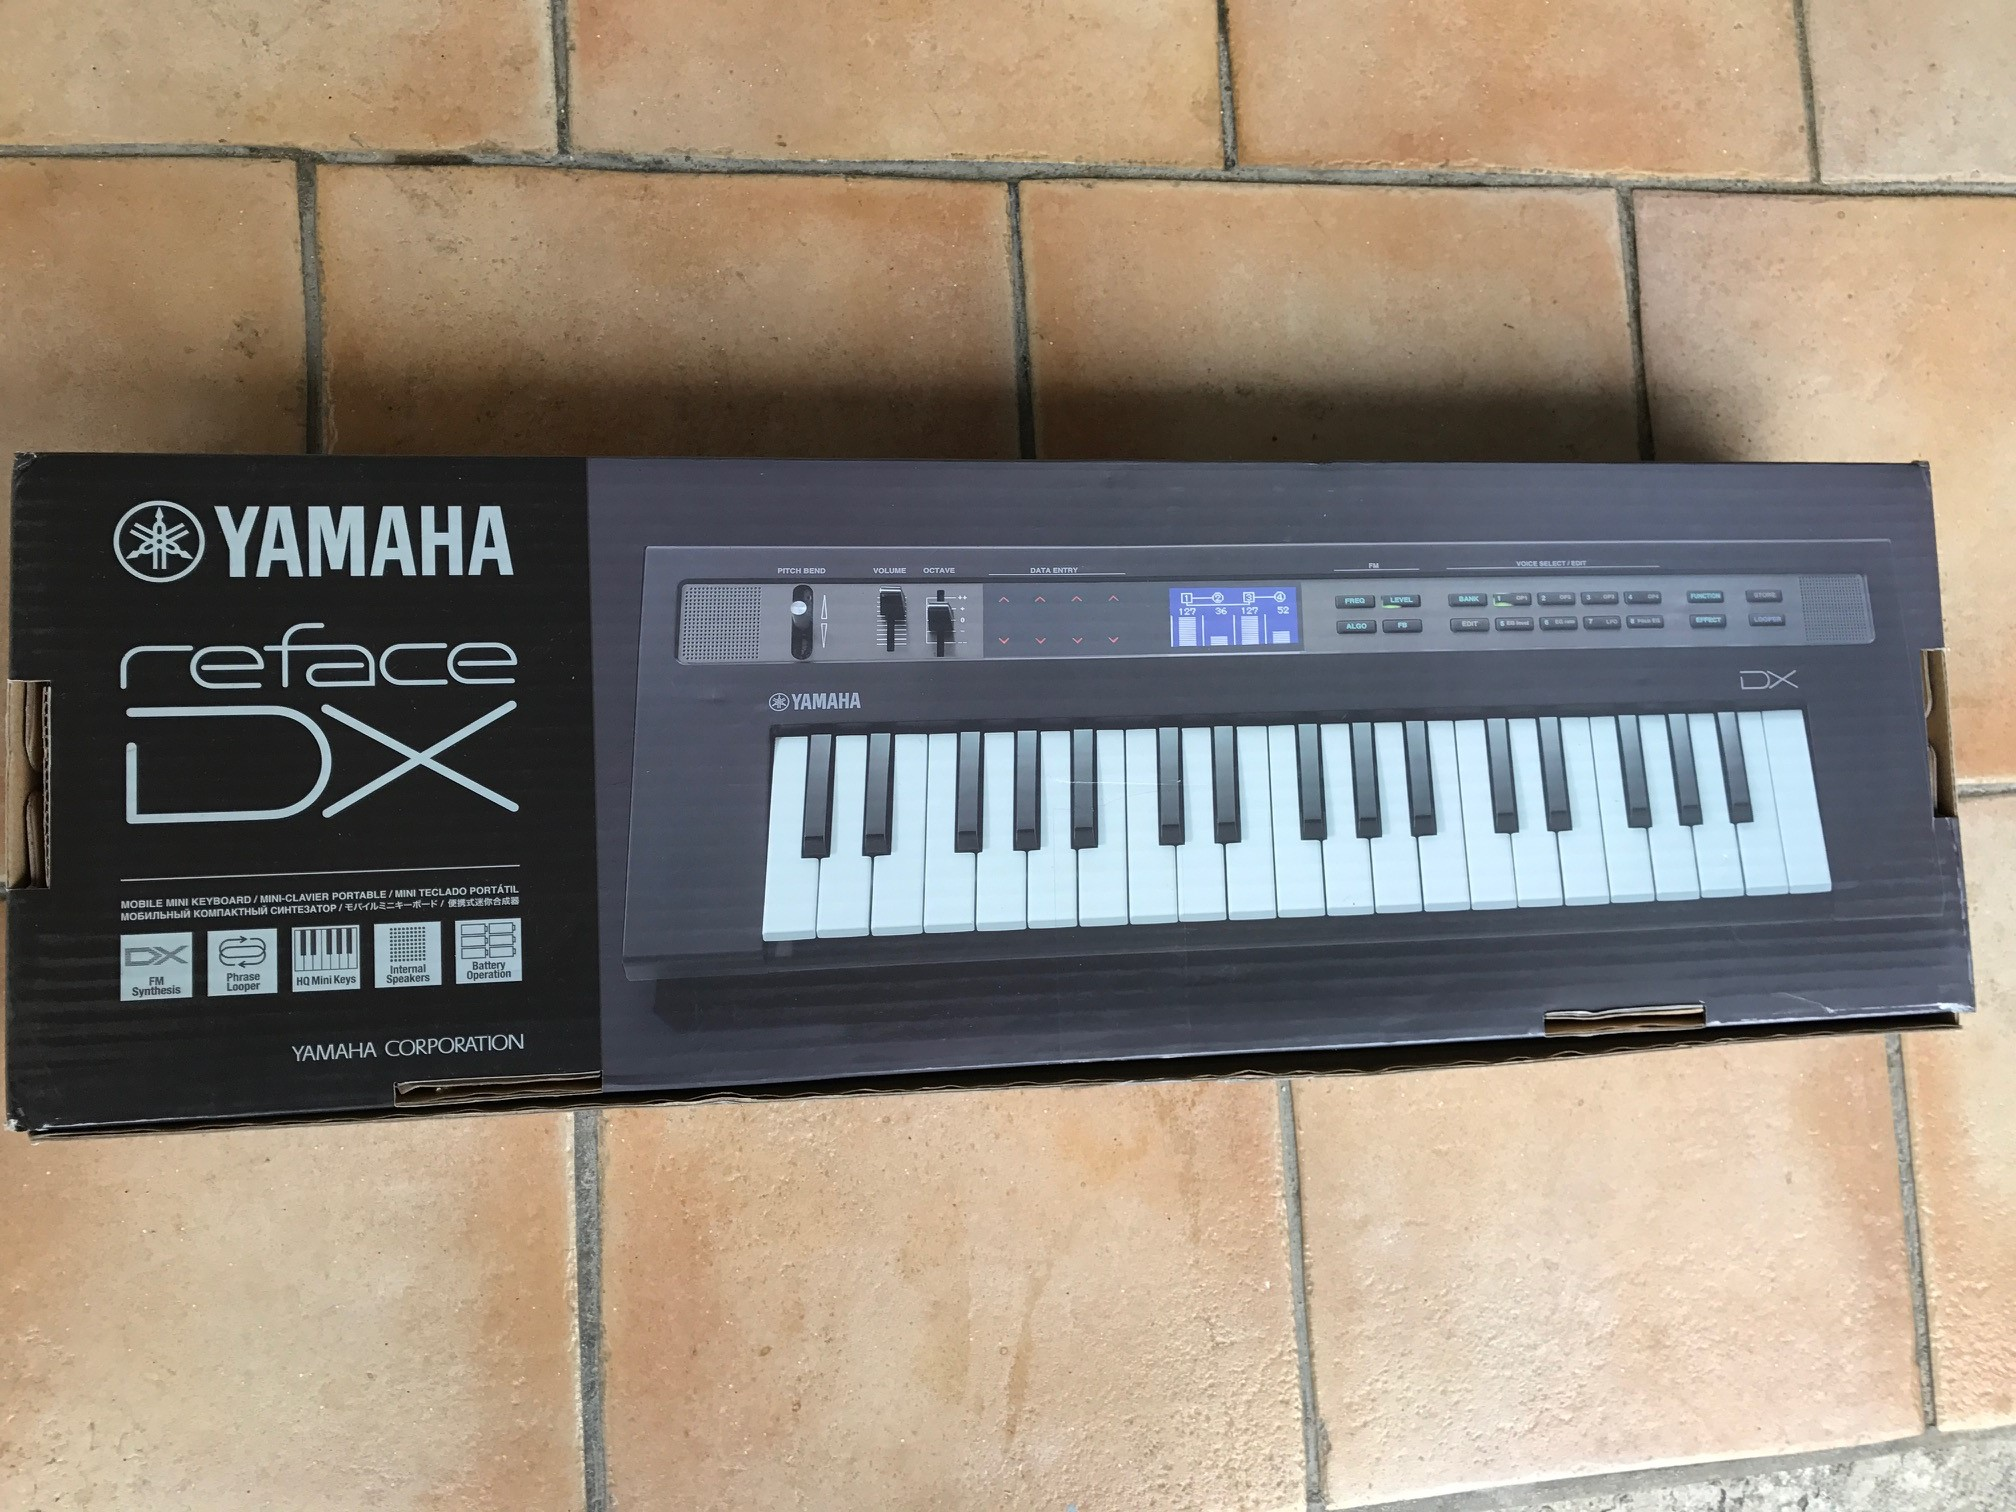 Yamaha reface dx image 1767859 audiofanzine for Yamaha dx reface review